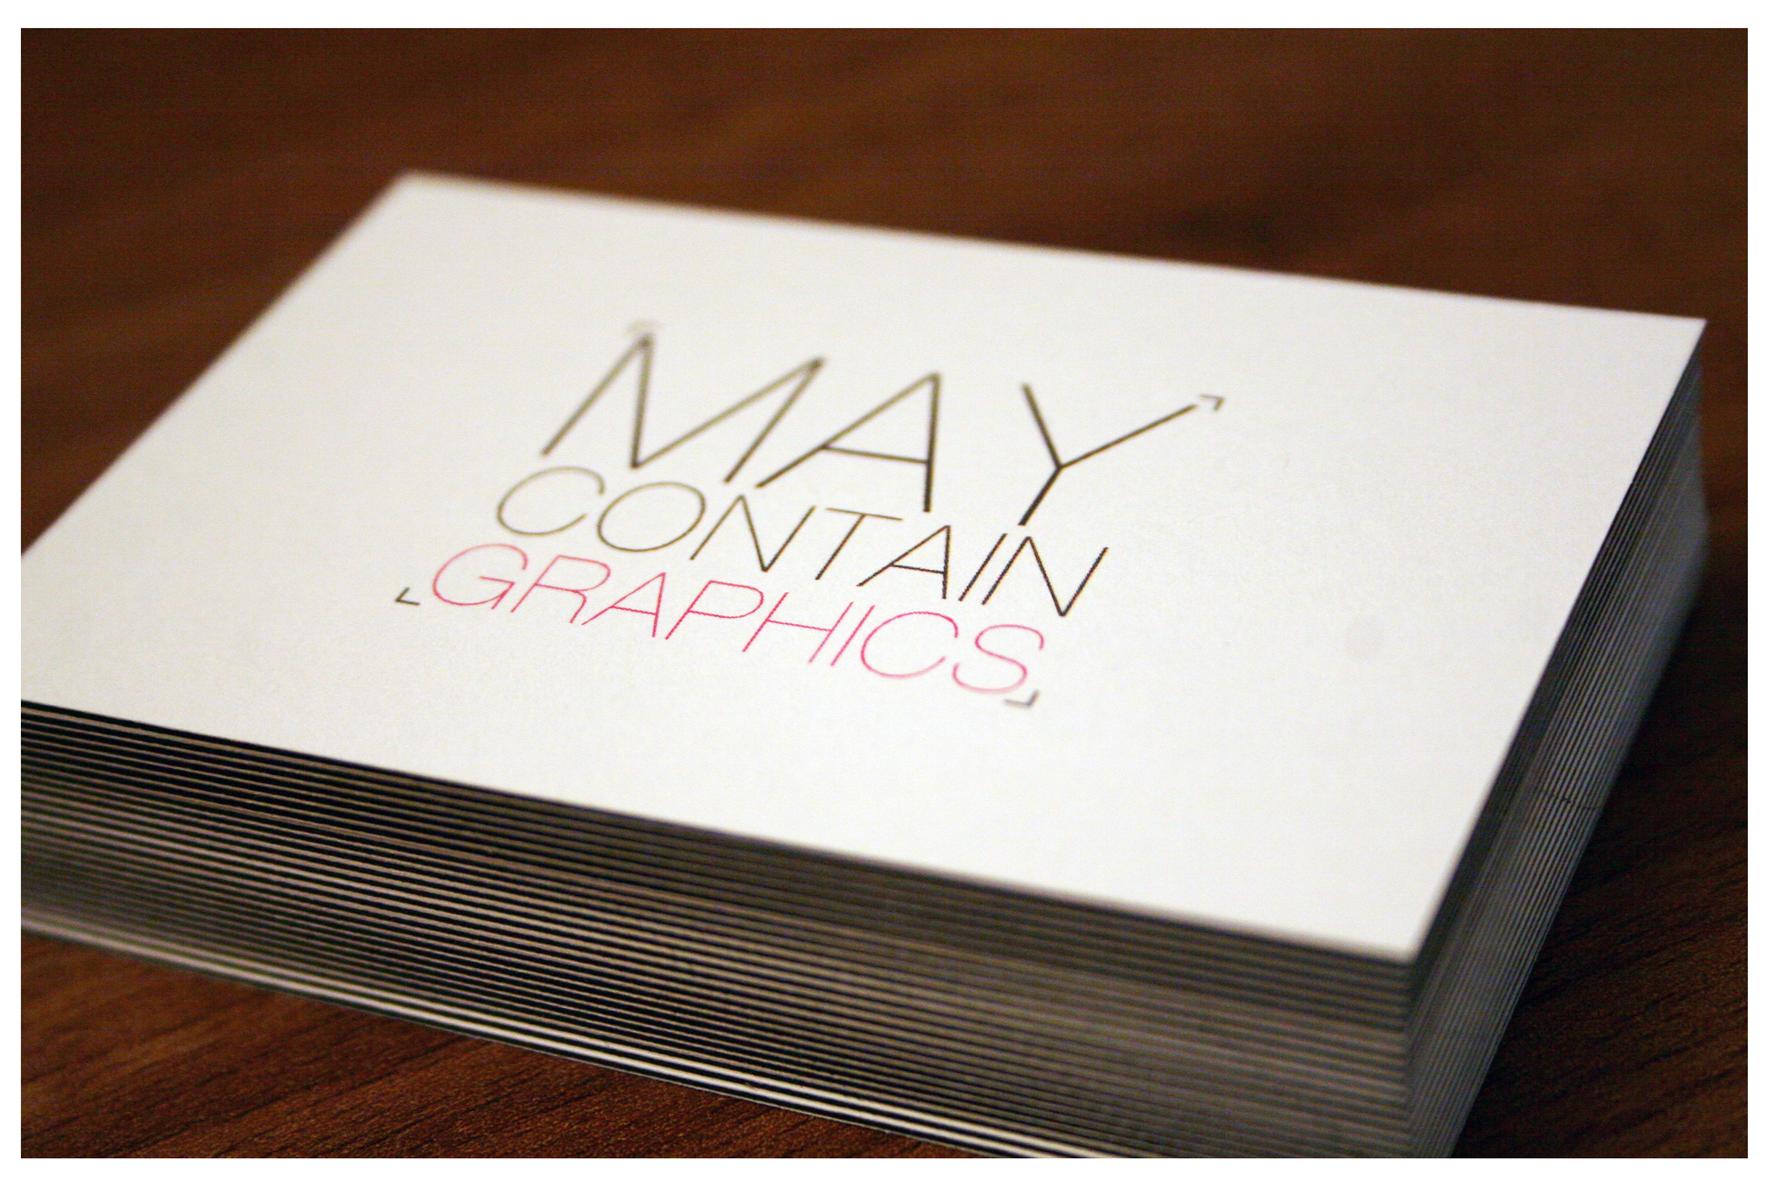 Bespoke logo design and high quality business card printing made bespoke logo design and high quality business card printing made by may contain graphics magicingreecefo Gallery